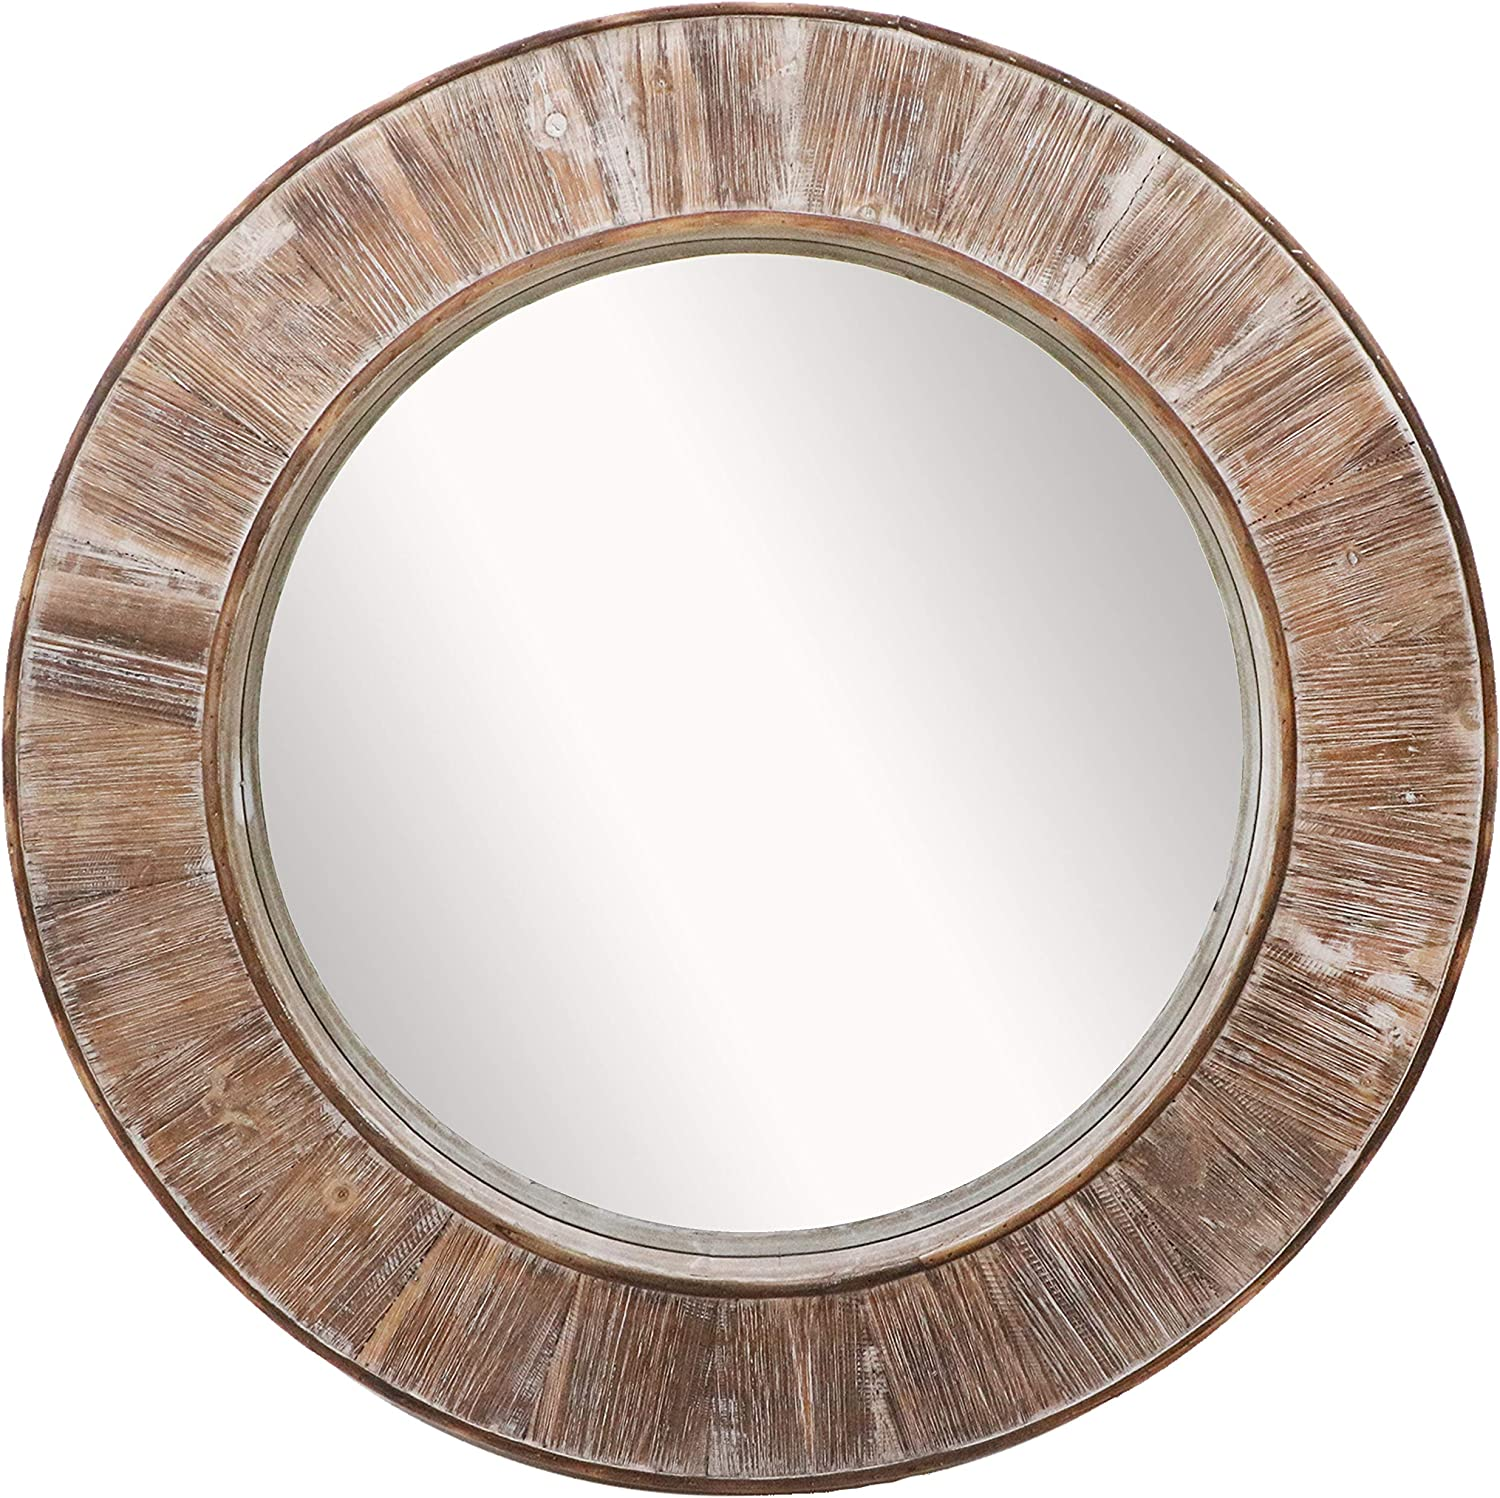 Barnyard Designs Round Decorative Wall Hanging Mirror, Large Wooden Circle Frame, Rustic Distressed Wood Farmhouse Mirror for Bedroom, Bathroom or Living Room Wall Decor, 31.5""